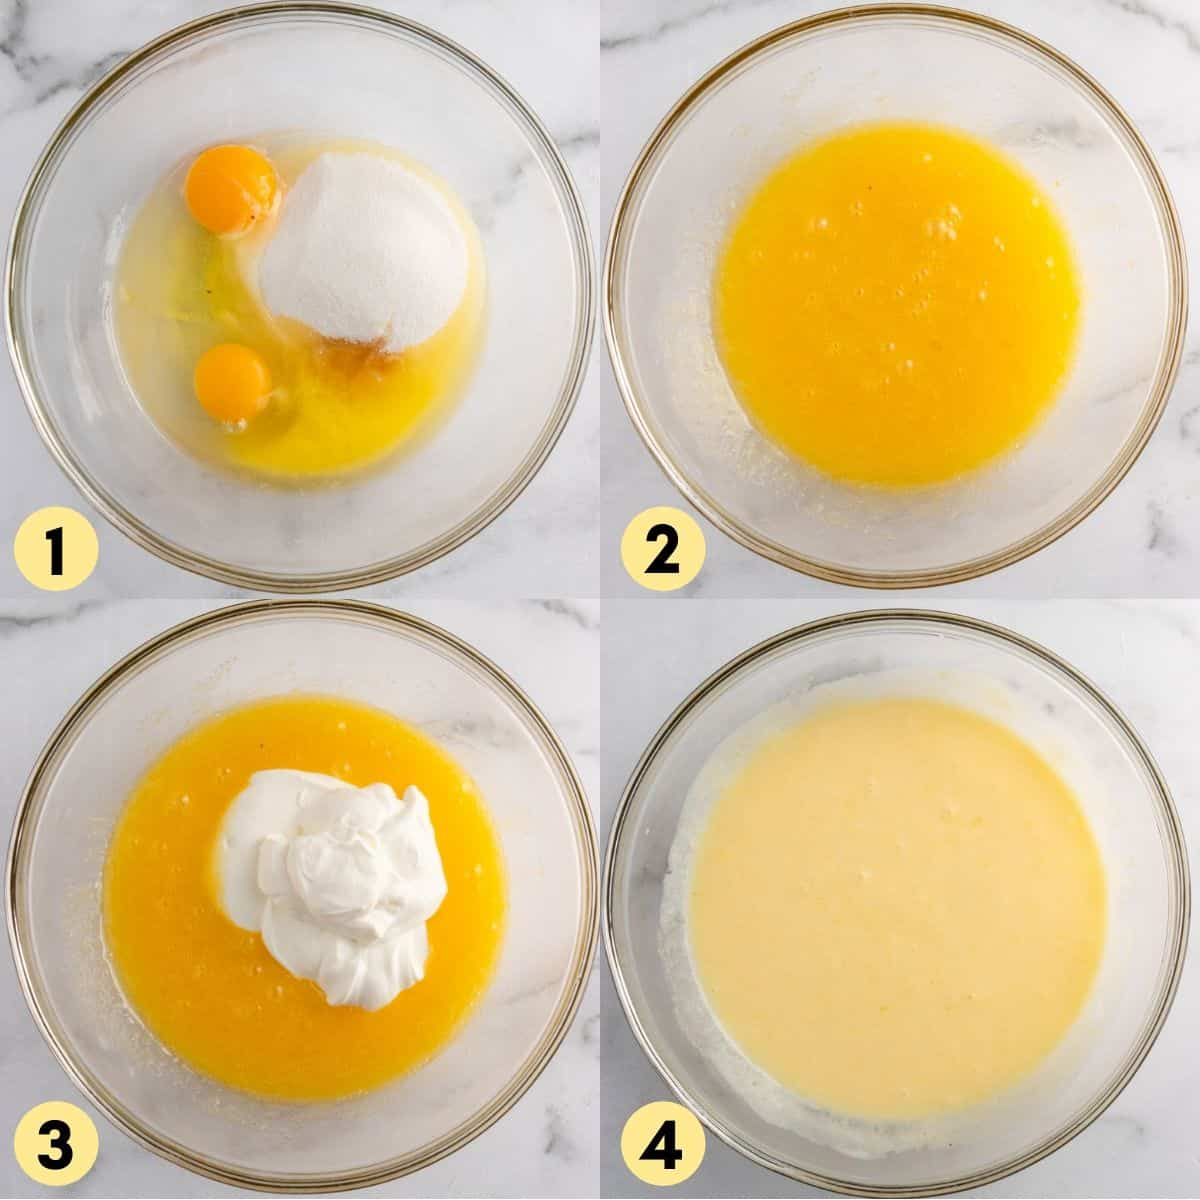 Process photos for recipe including mixing of eggs, butter and sugar.